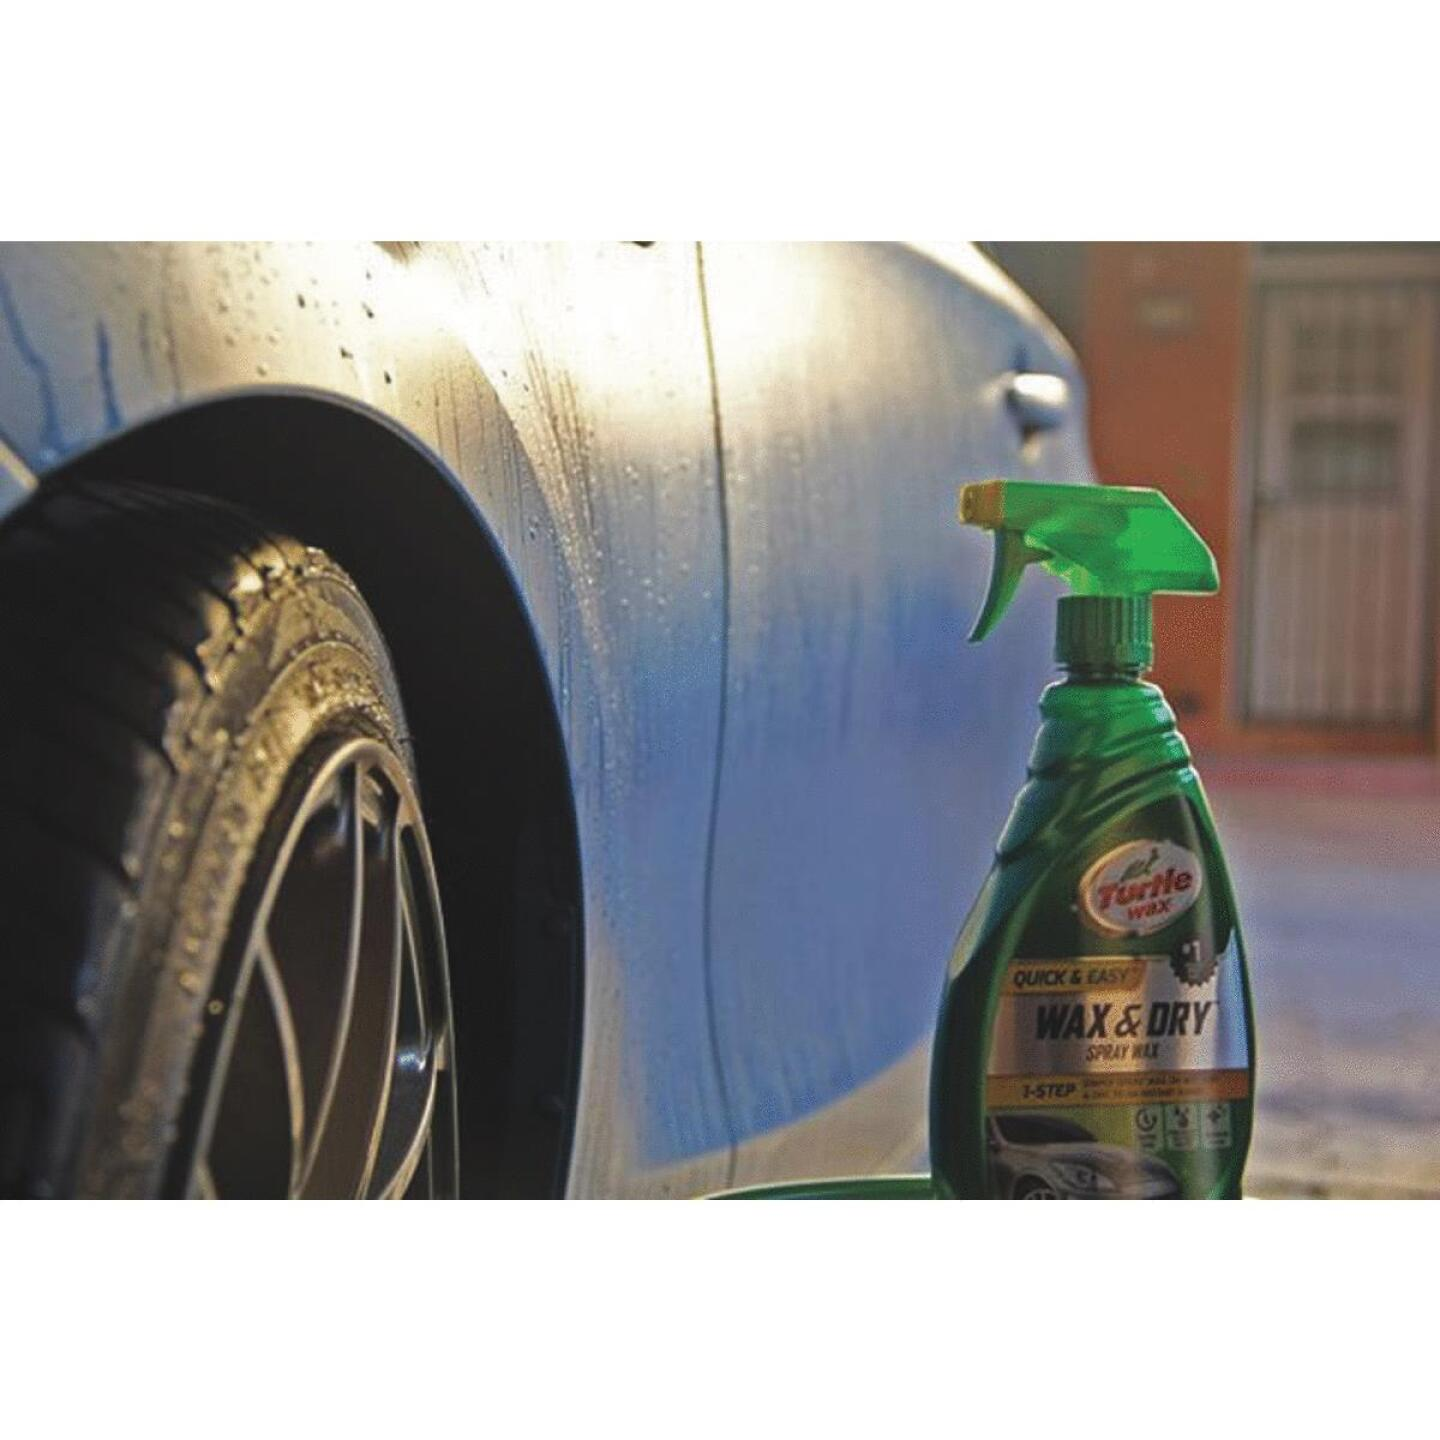 Turtle Wax Wax & Dry 26 Oz. Trigger Spray Spray Car Wax Image 2